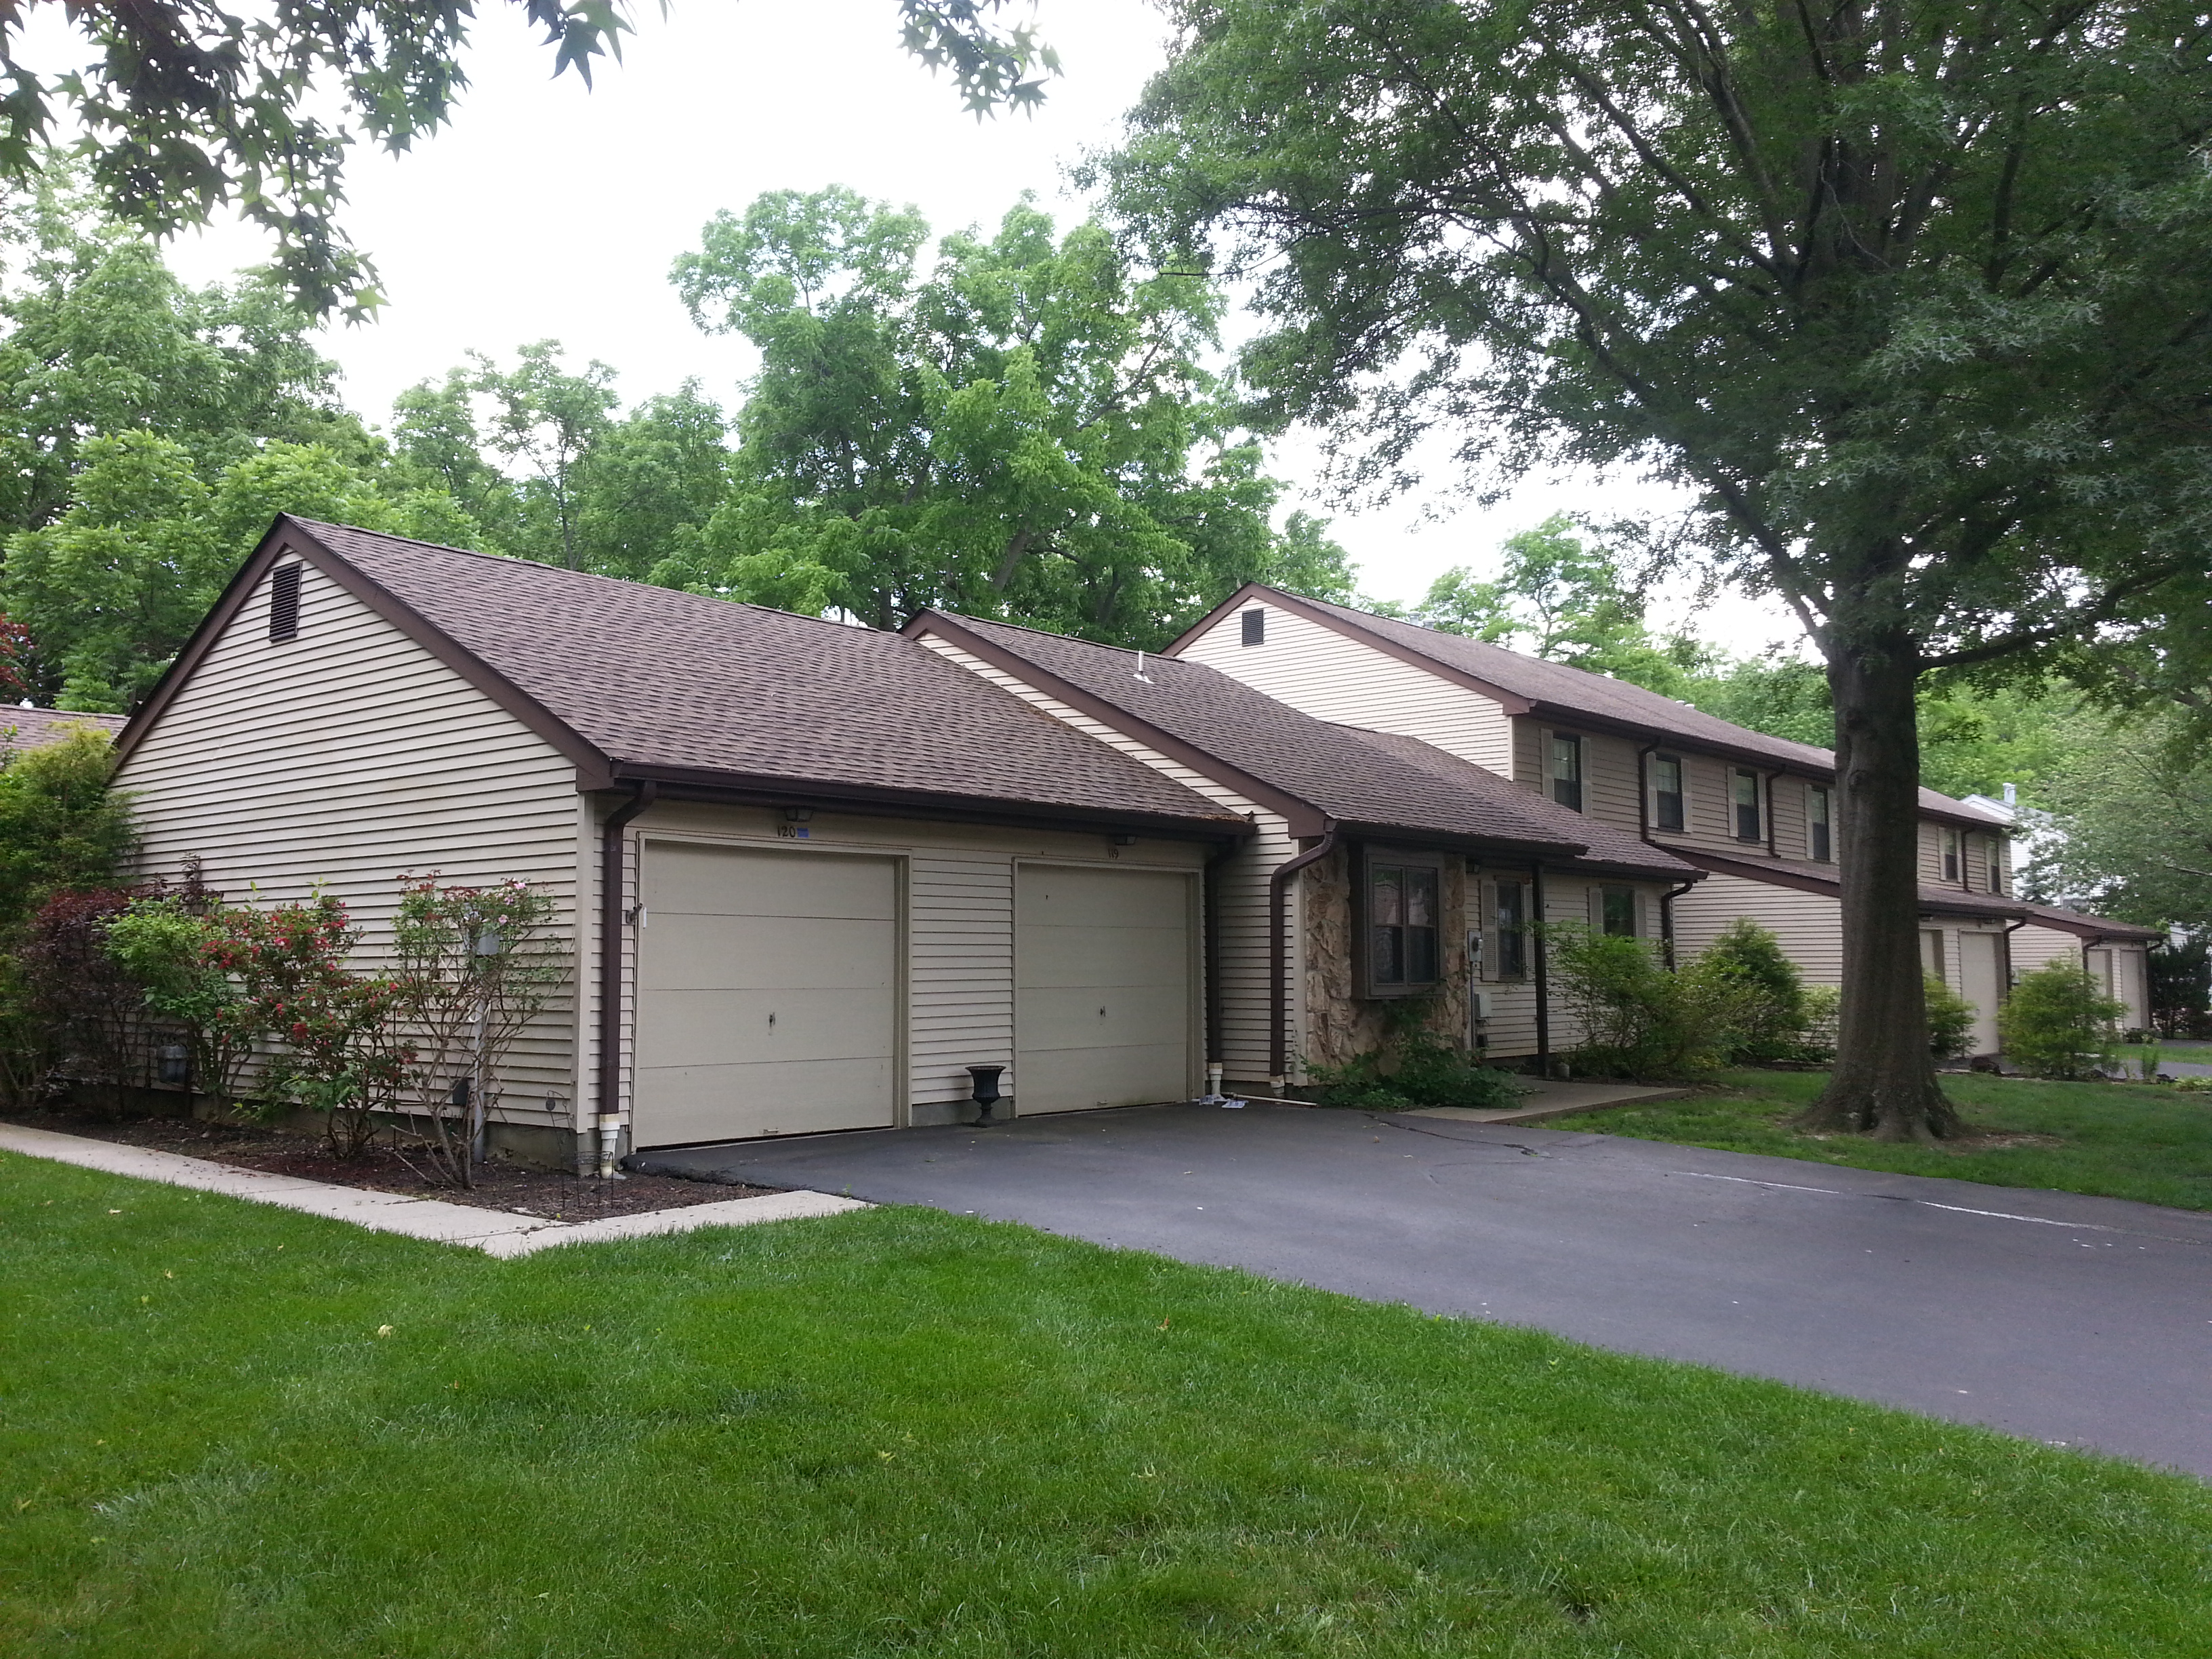 Kimberly Woods in Oceanport NJ has both townhouse and ranch style condos.